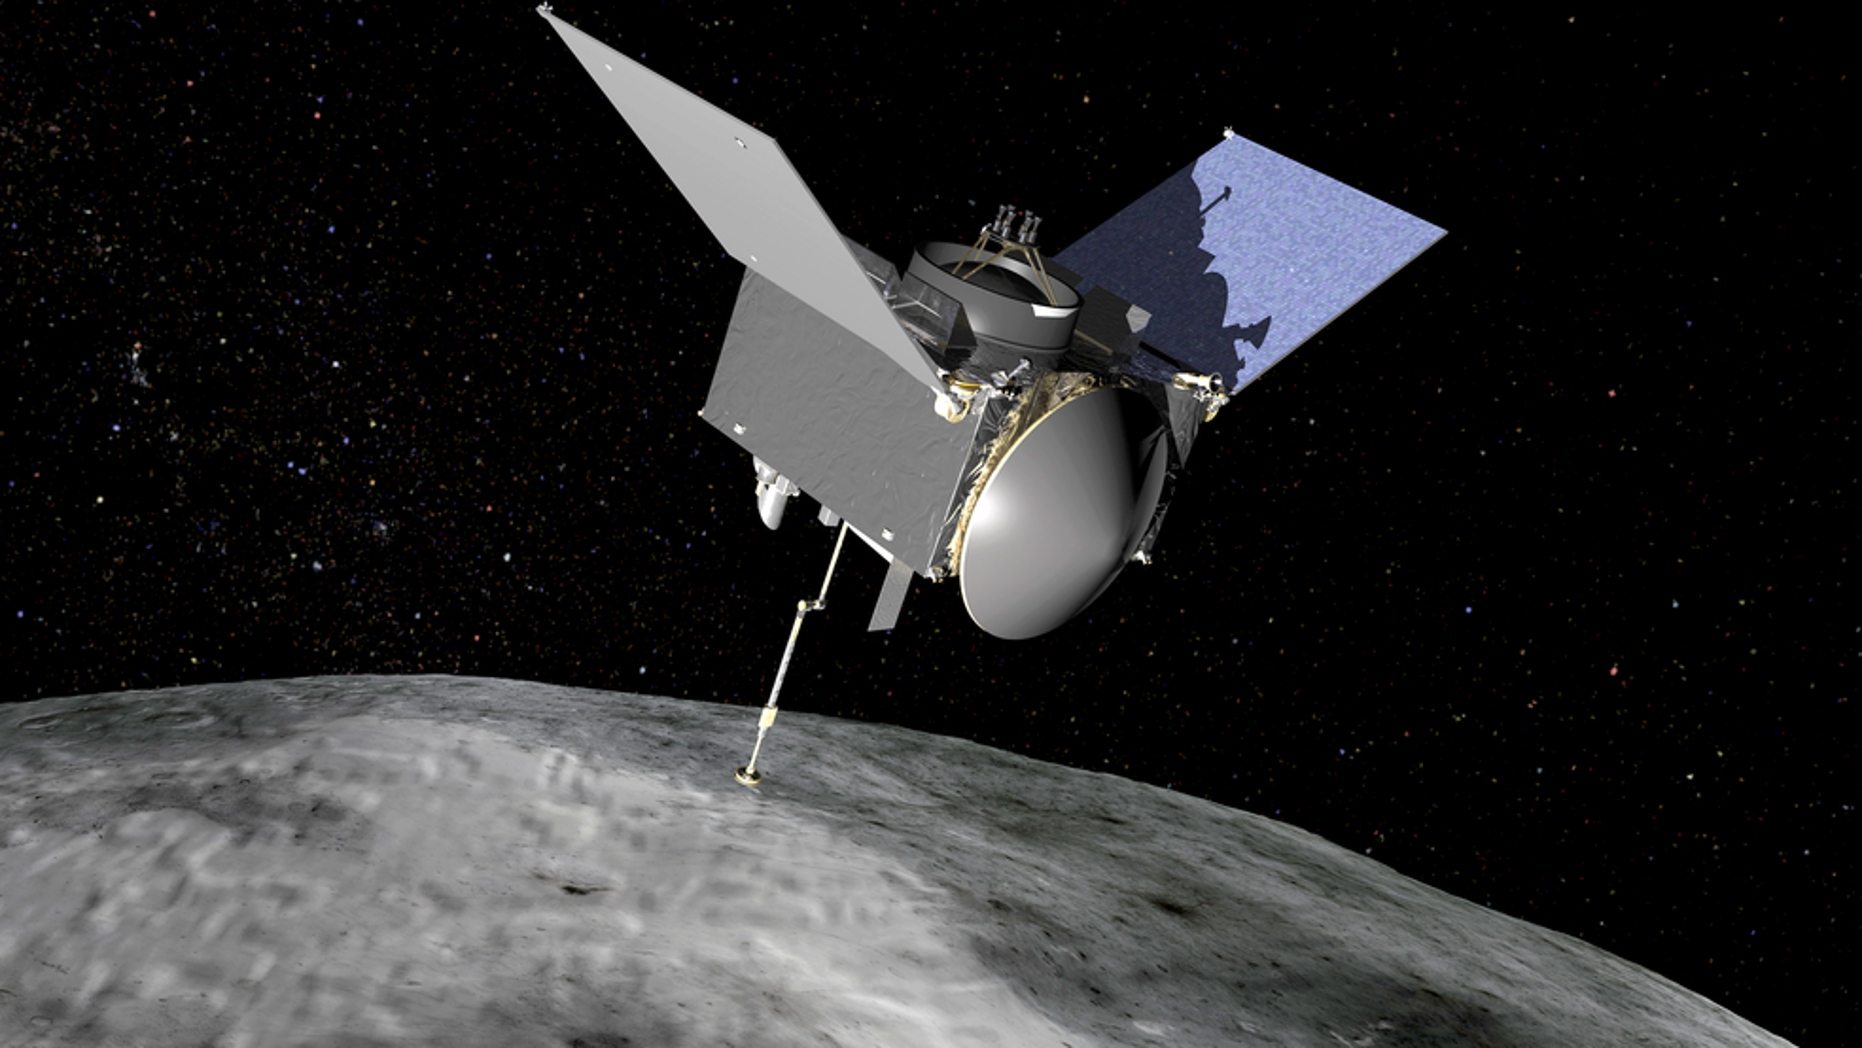 NASA's Origins, Spectral Interpretation, Resource Identification, Security-Regolith Explorer (OSIRIS-REx) spacecraft, the first U.S. mission to sample an asteroid, will travel to the near-Earth asteroid Bennu, arriving in 2018, to survey the surface, retrieve at least 60 grams (2.1 ounces) of surface material, and return it to Earth in 2023 for study.